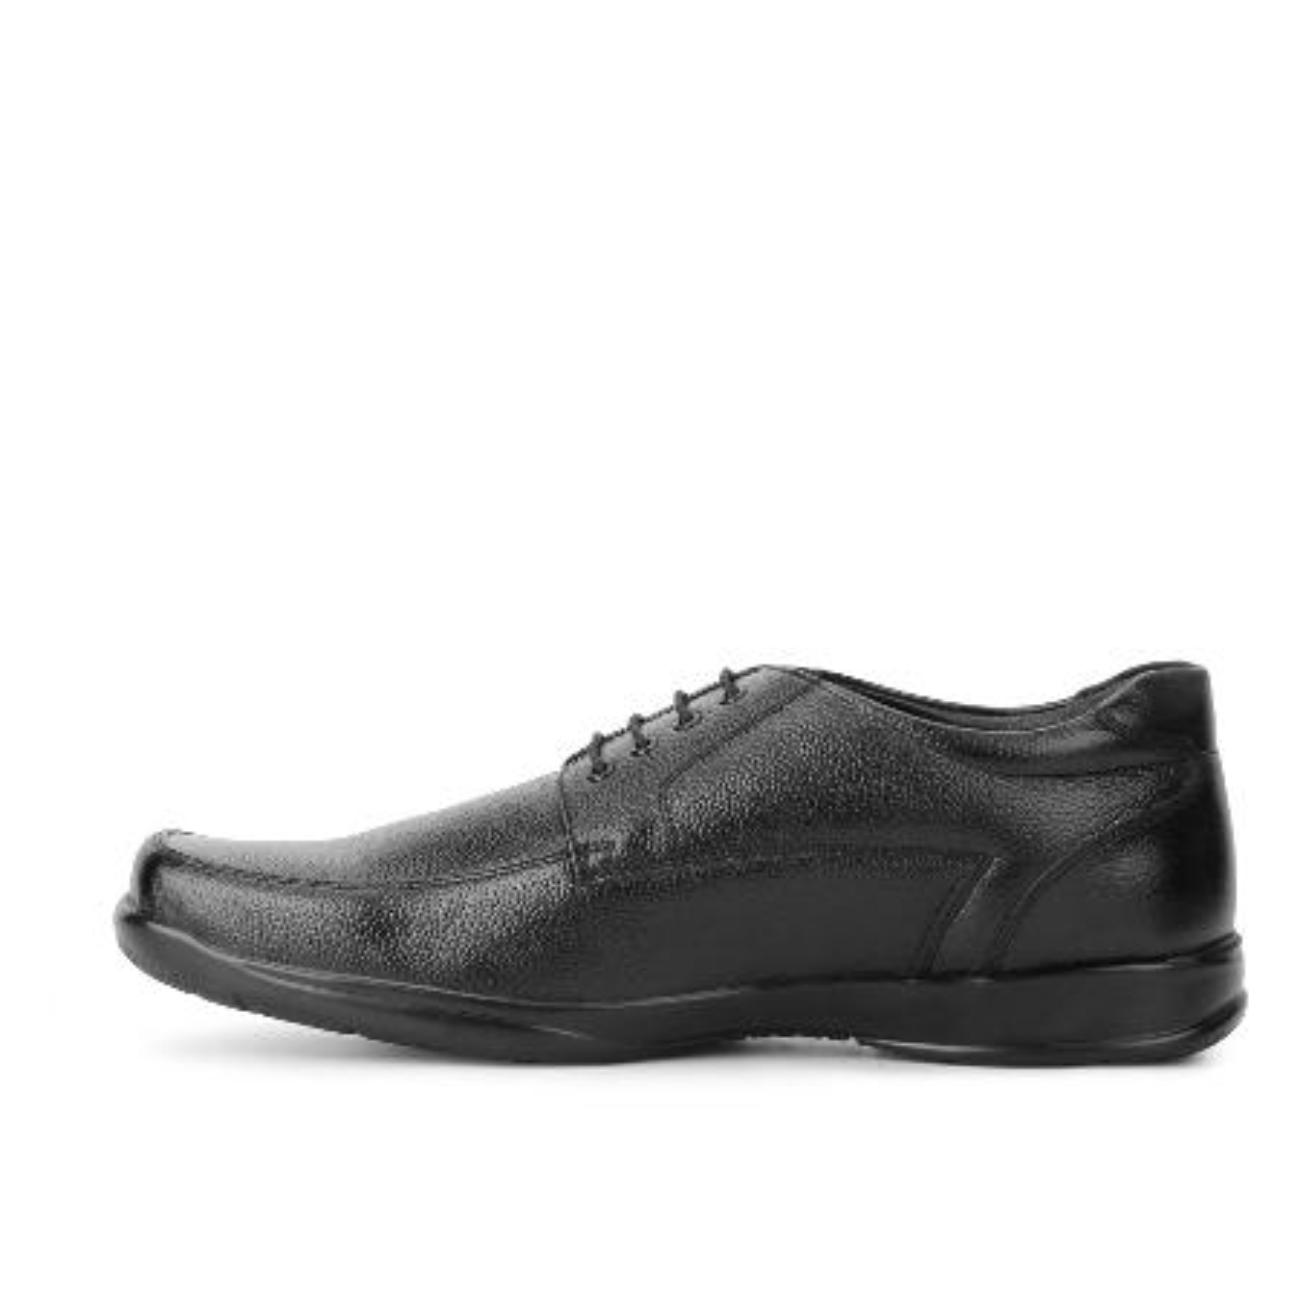 black formal shoes side view 2